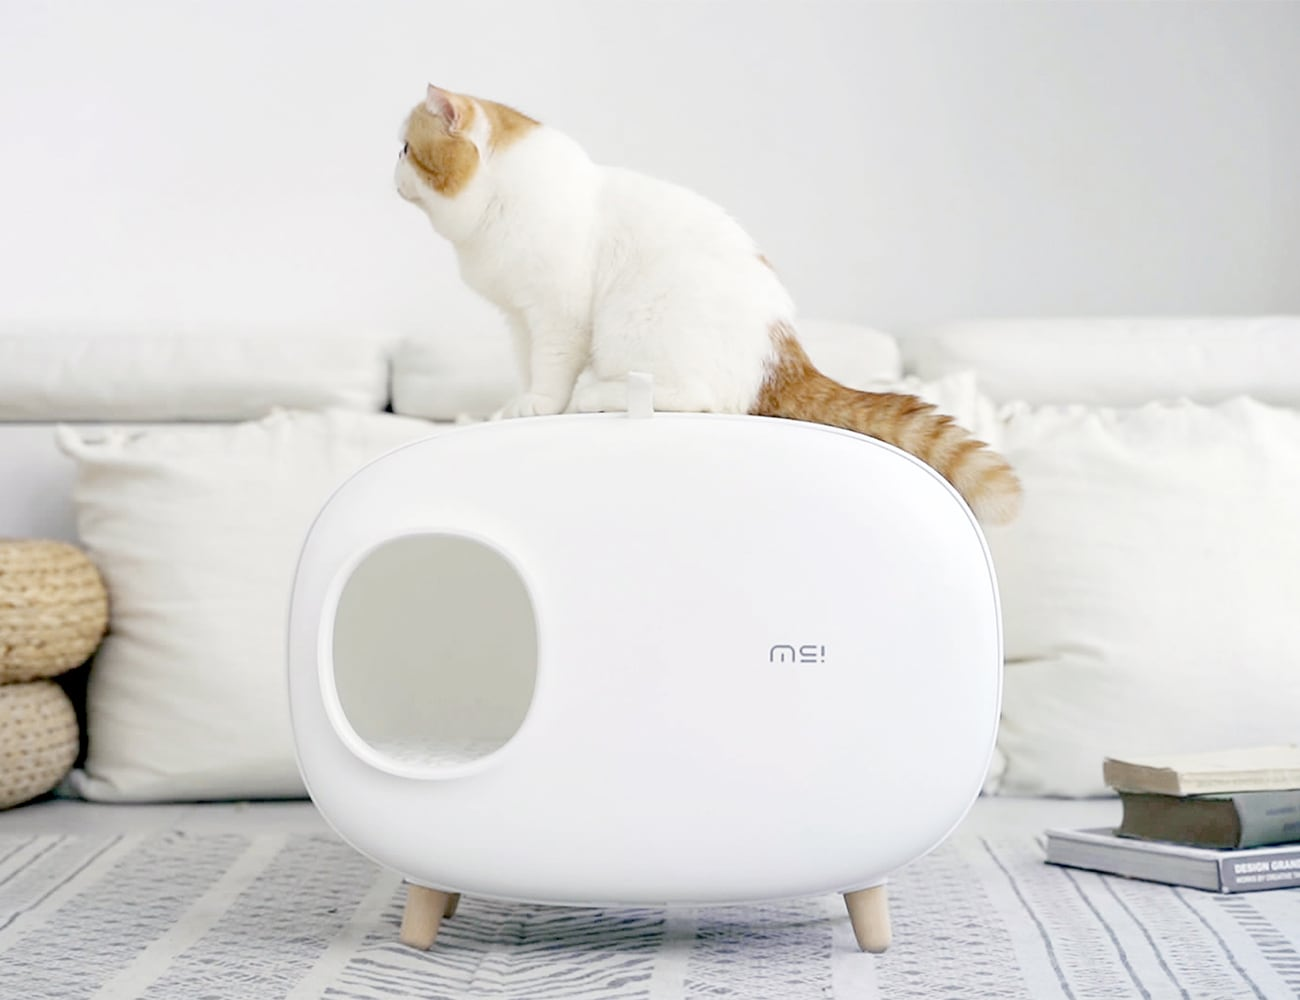 Makesure Modern Easy Cat Litter Box makes light of litter duties